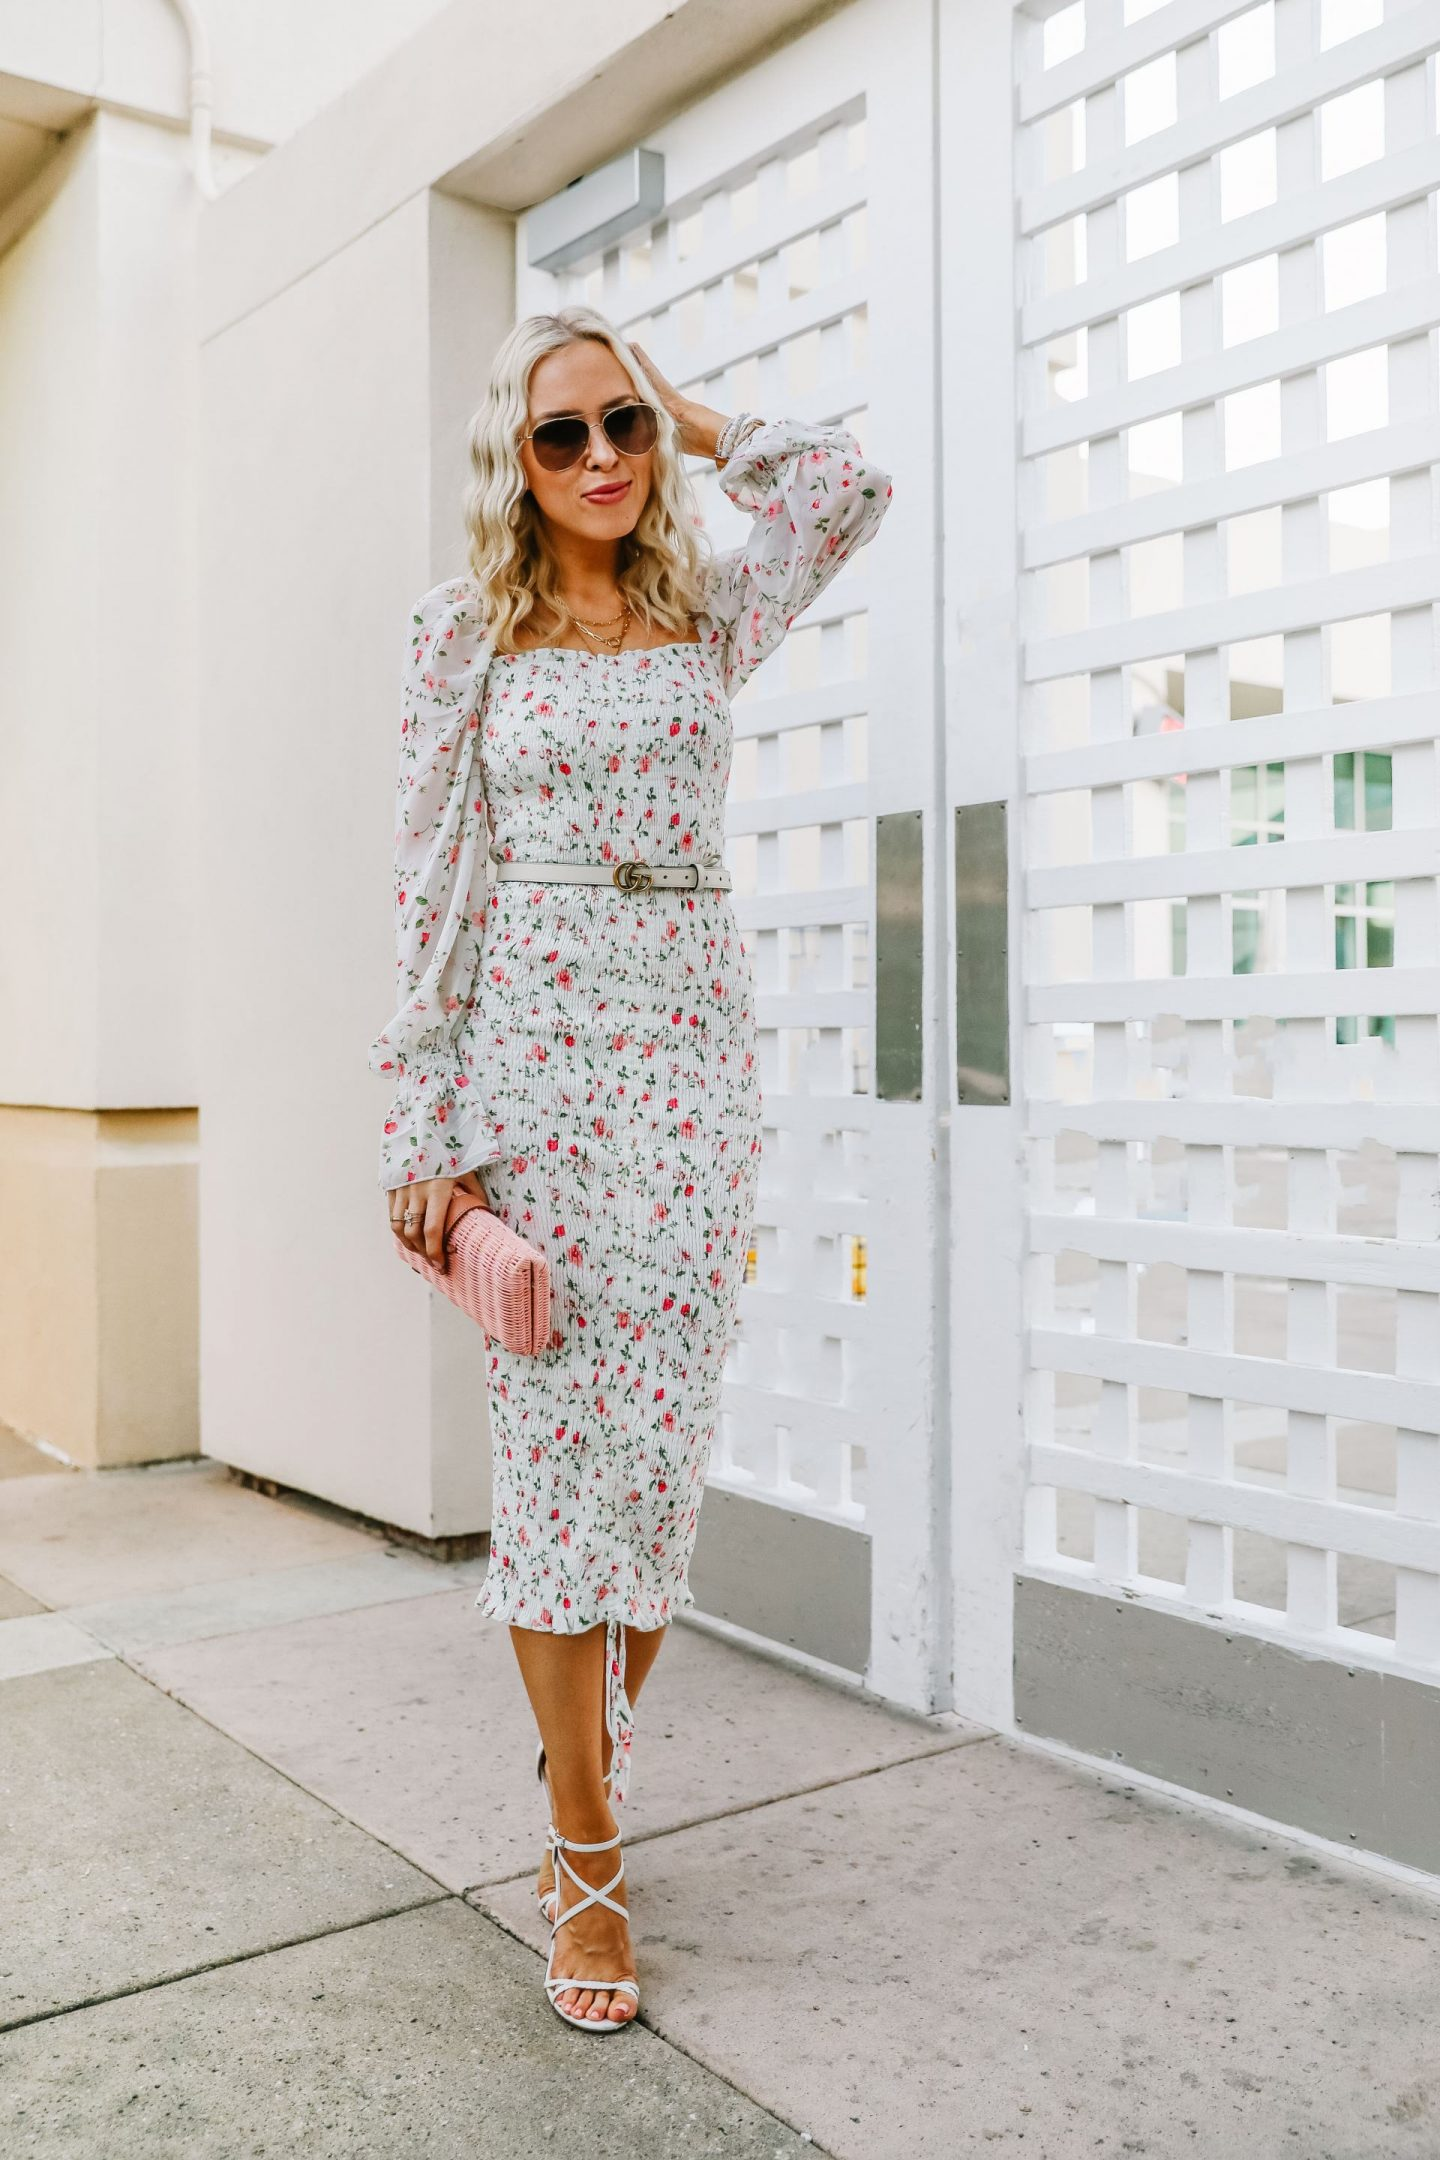 Petal & Pup spring floral dress round up, featured by top San Francisco fashion blogger Lombard and Fifth.